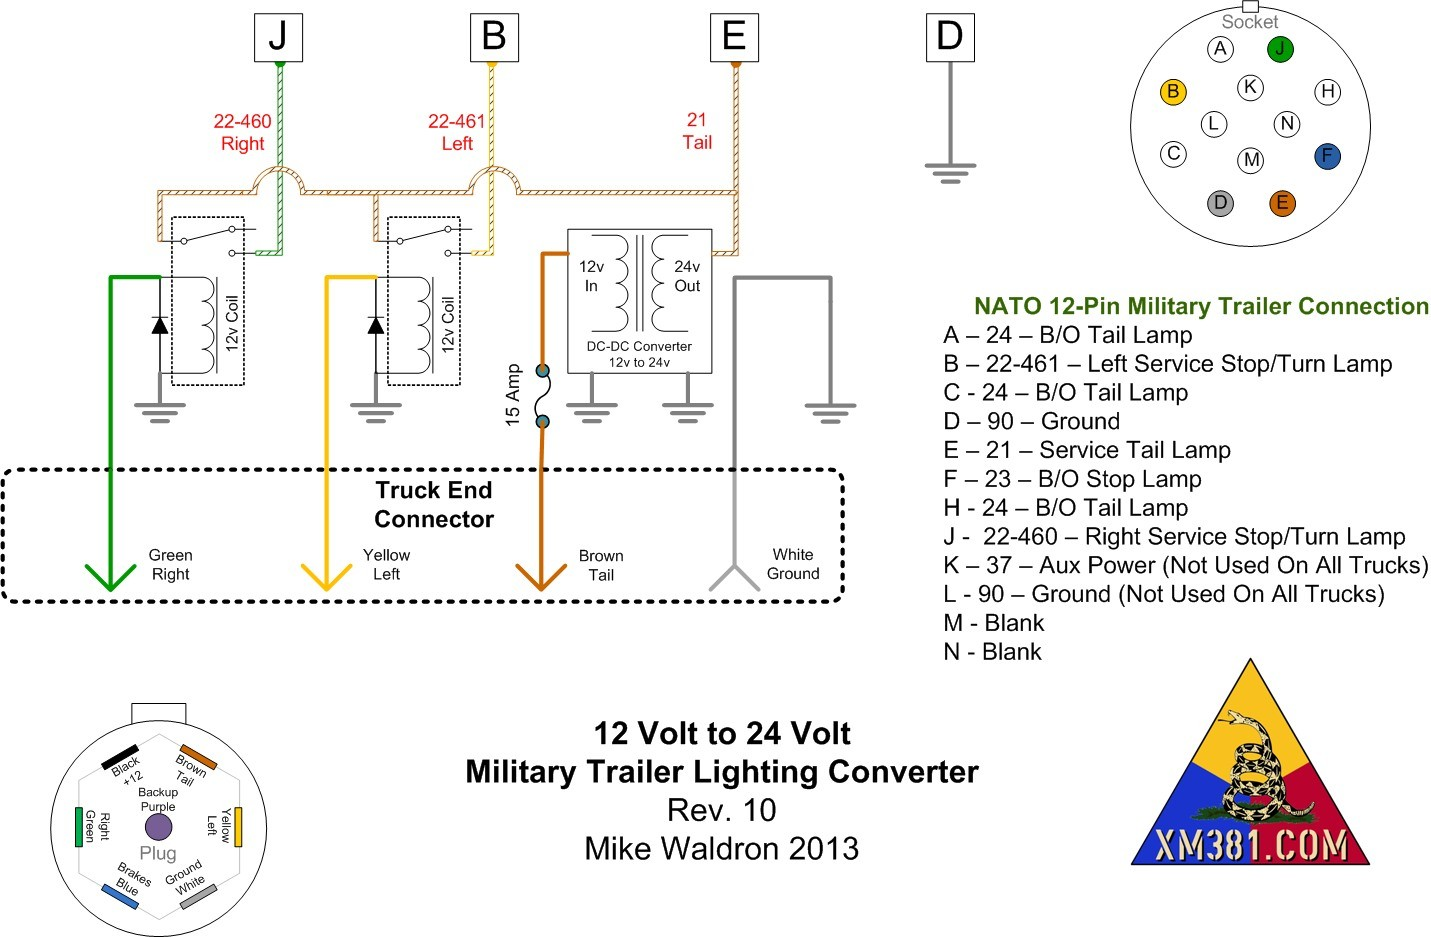 Army Relay Schematic Wiring Diagram Trusted M38a1 Trailer For Receptacle Wire 12 Pin Military Circuit Connection U2022 Auto